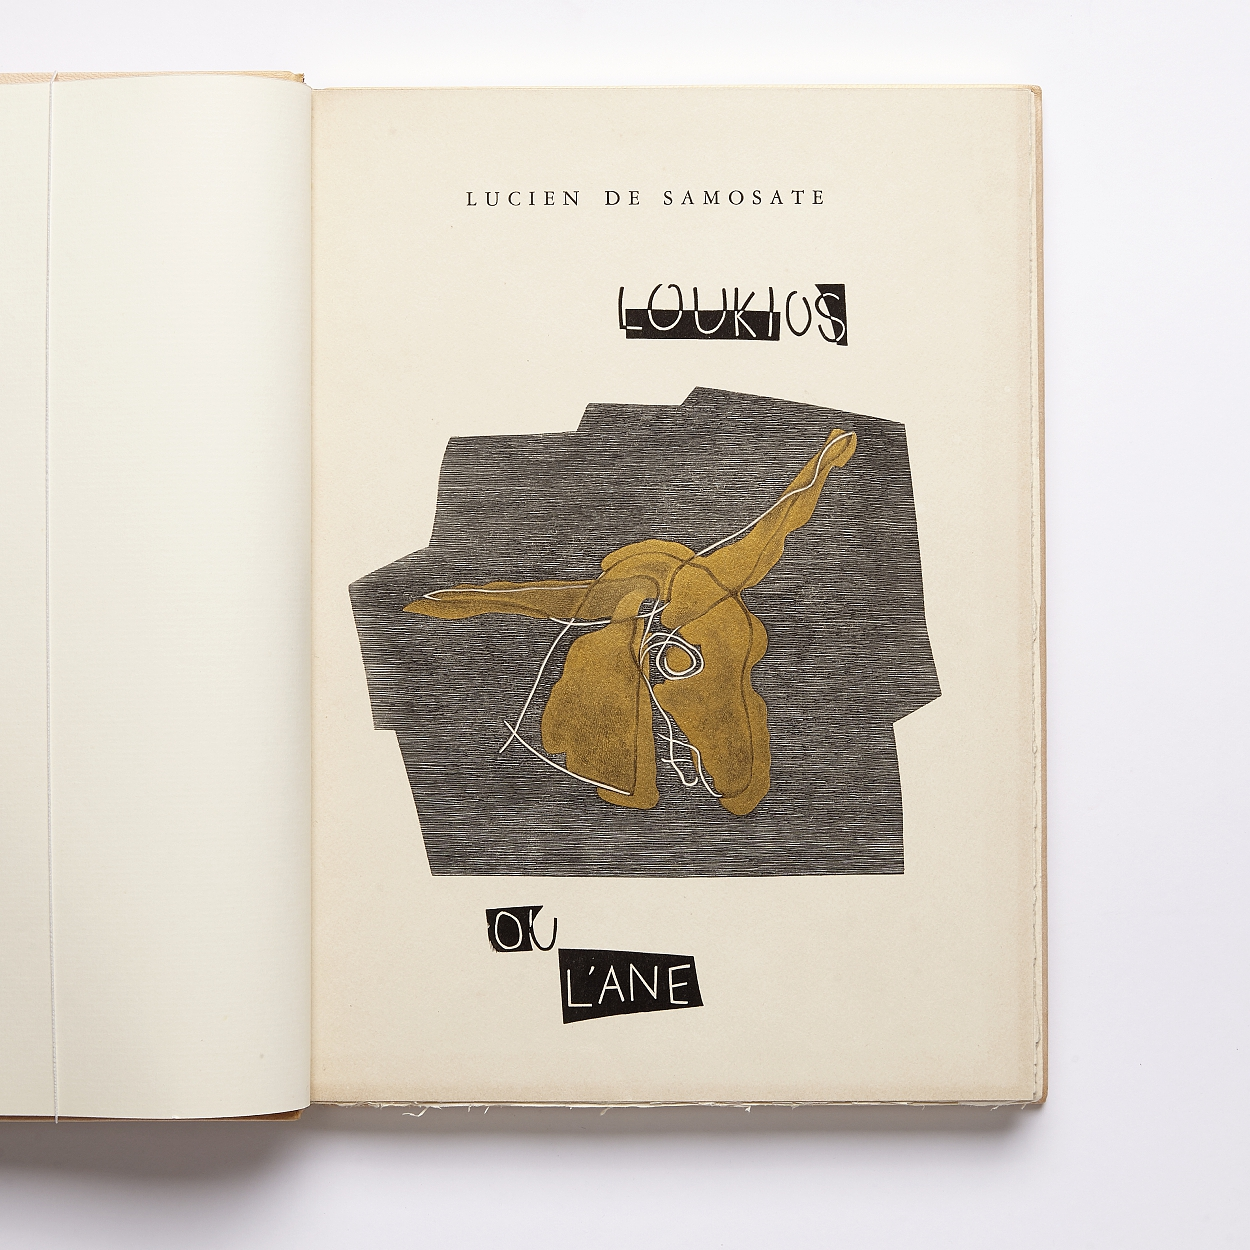 Samosate with woodcuts by Henri Laurens 1947